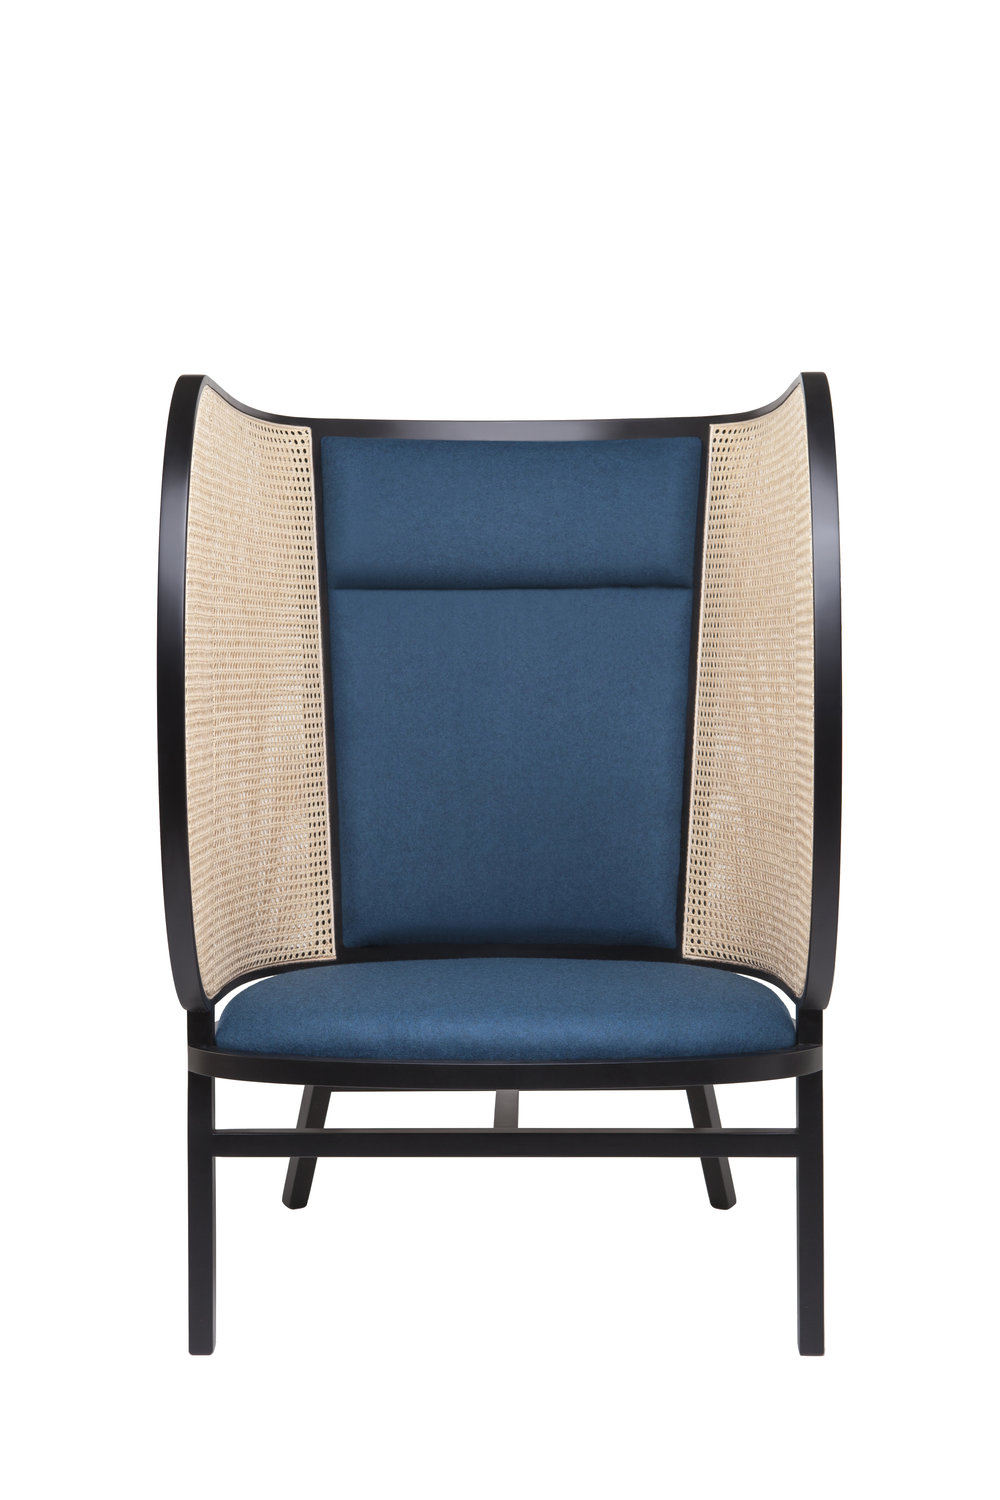 GTV_ HIDEOUT lounge chair_design Front_2.jpg